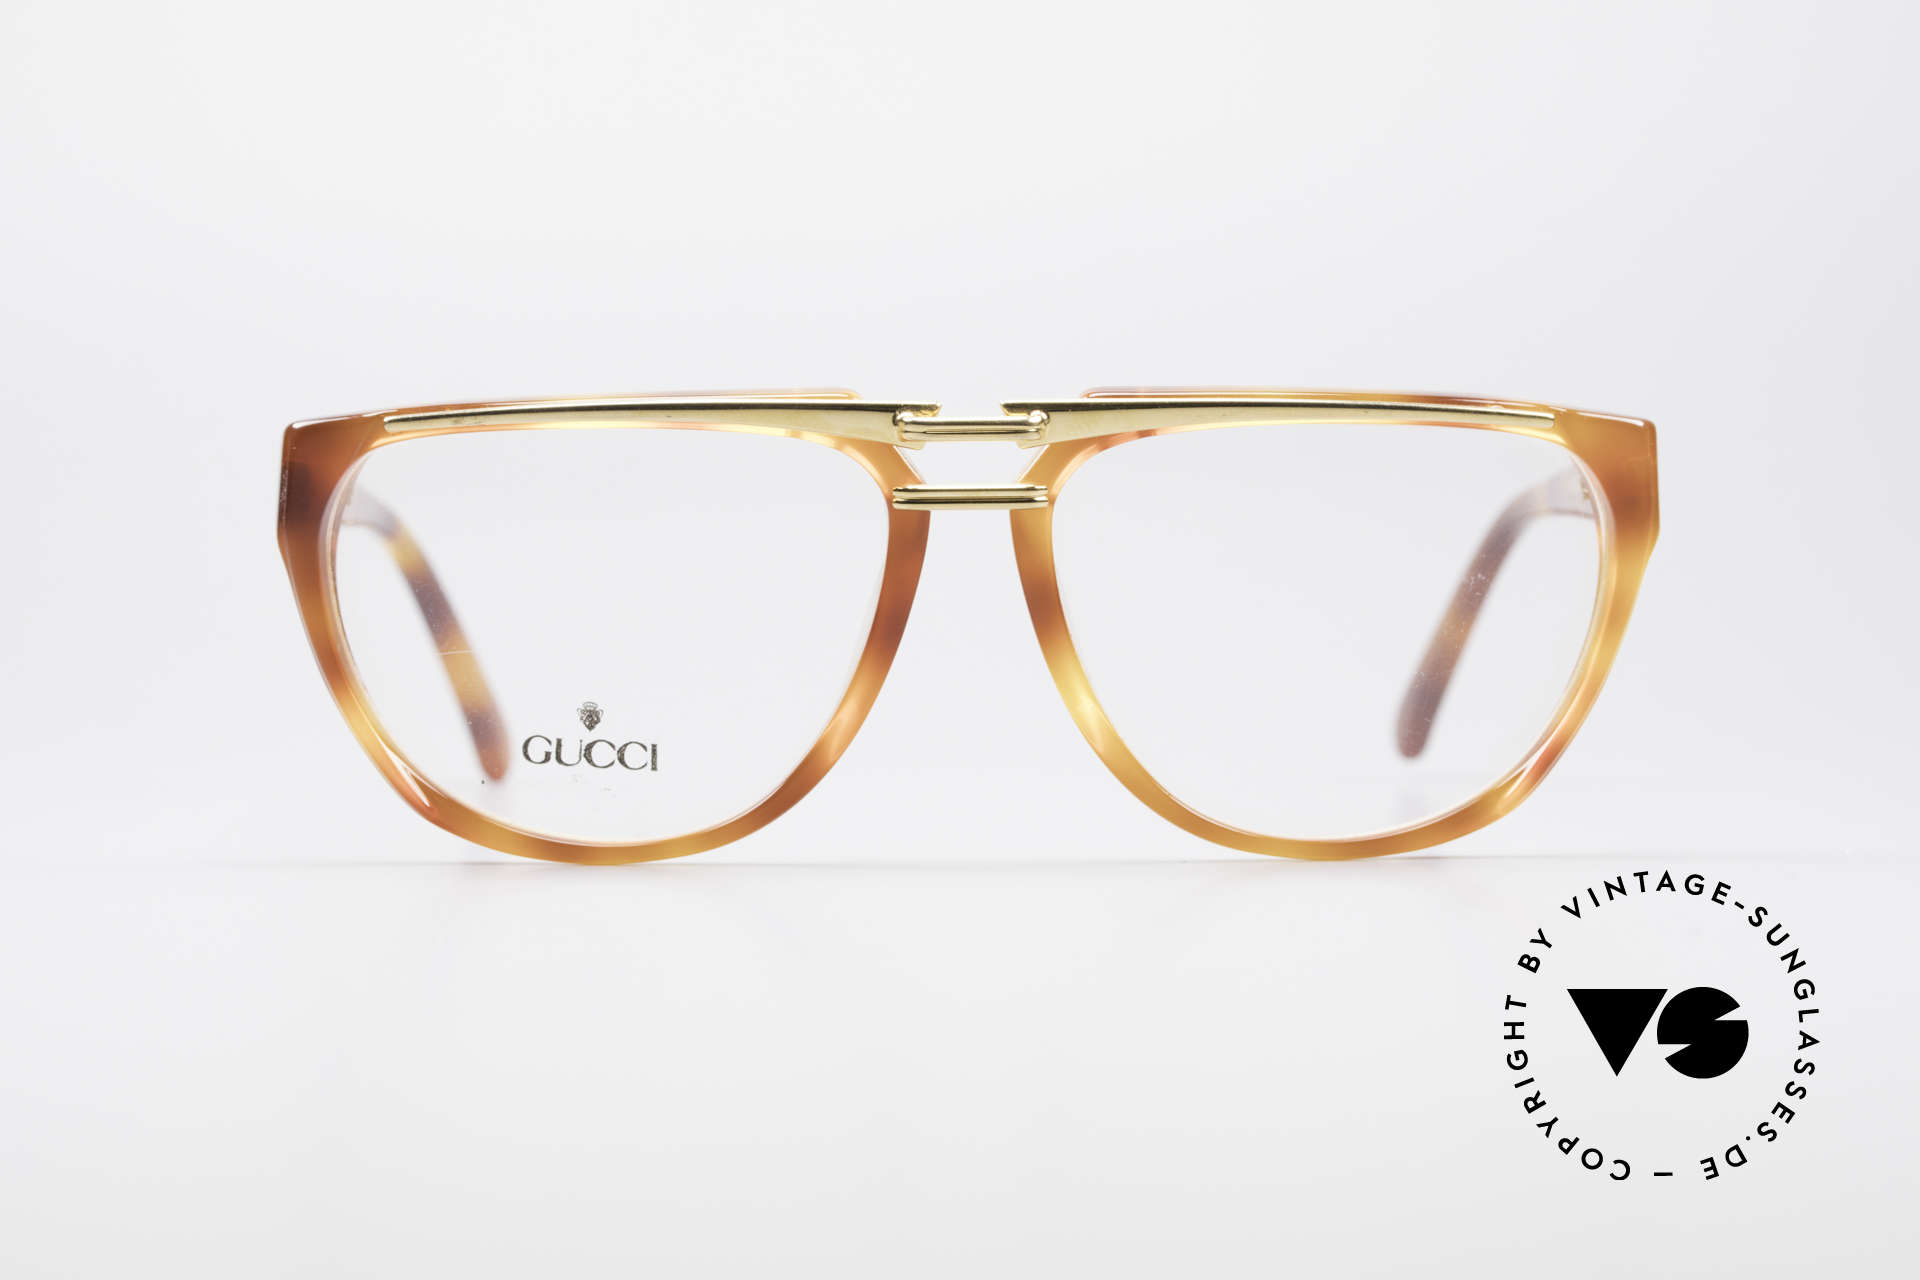 Gucci 2321 Ladies Designer Glasses 80's, with the famous Gucci symbol (2 connected stirrups), Made for Women